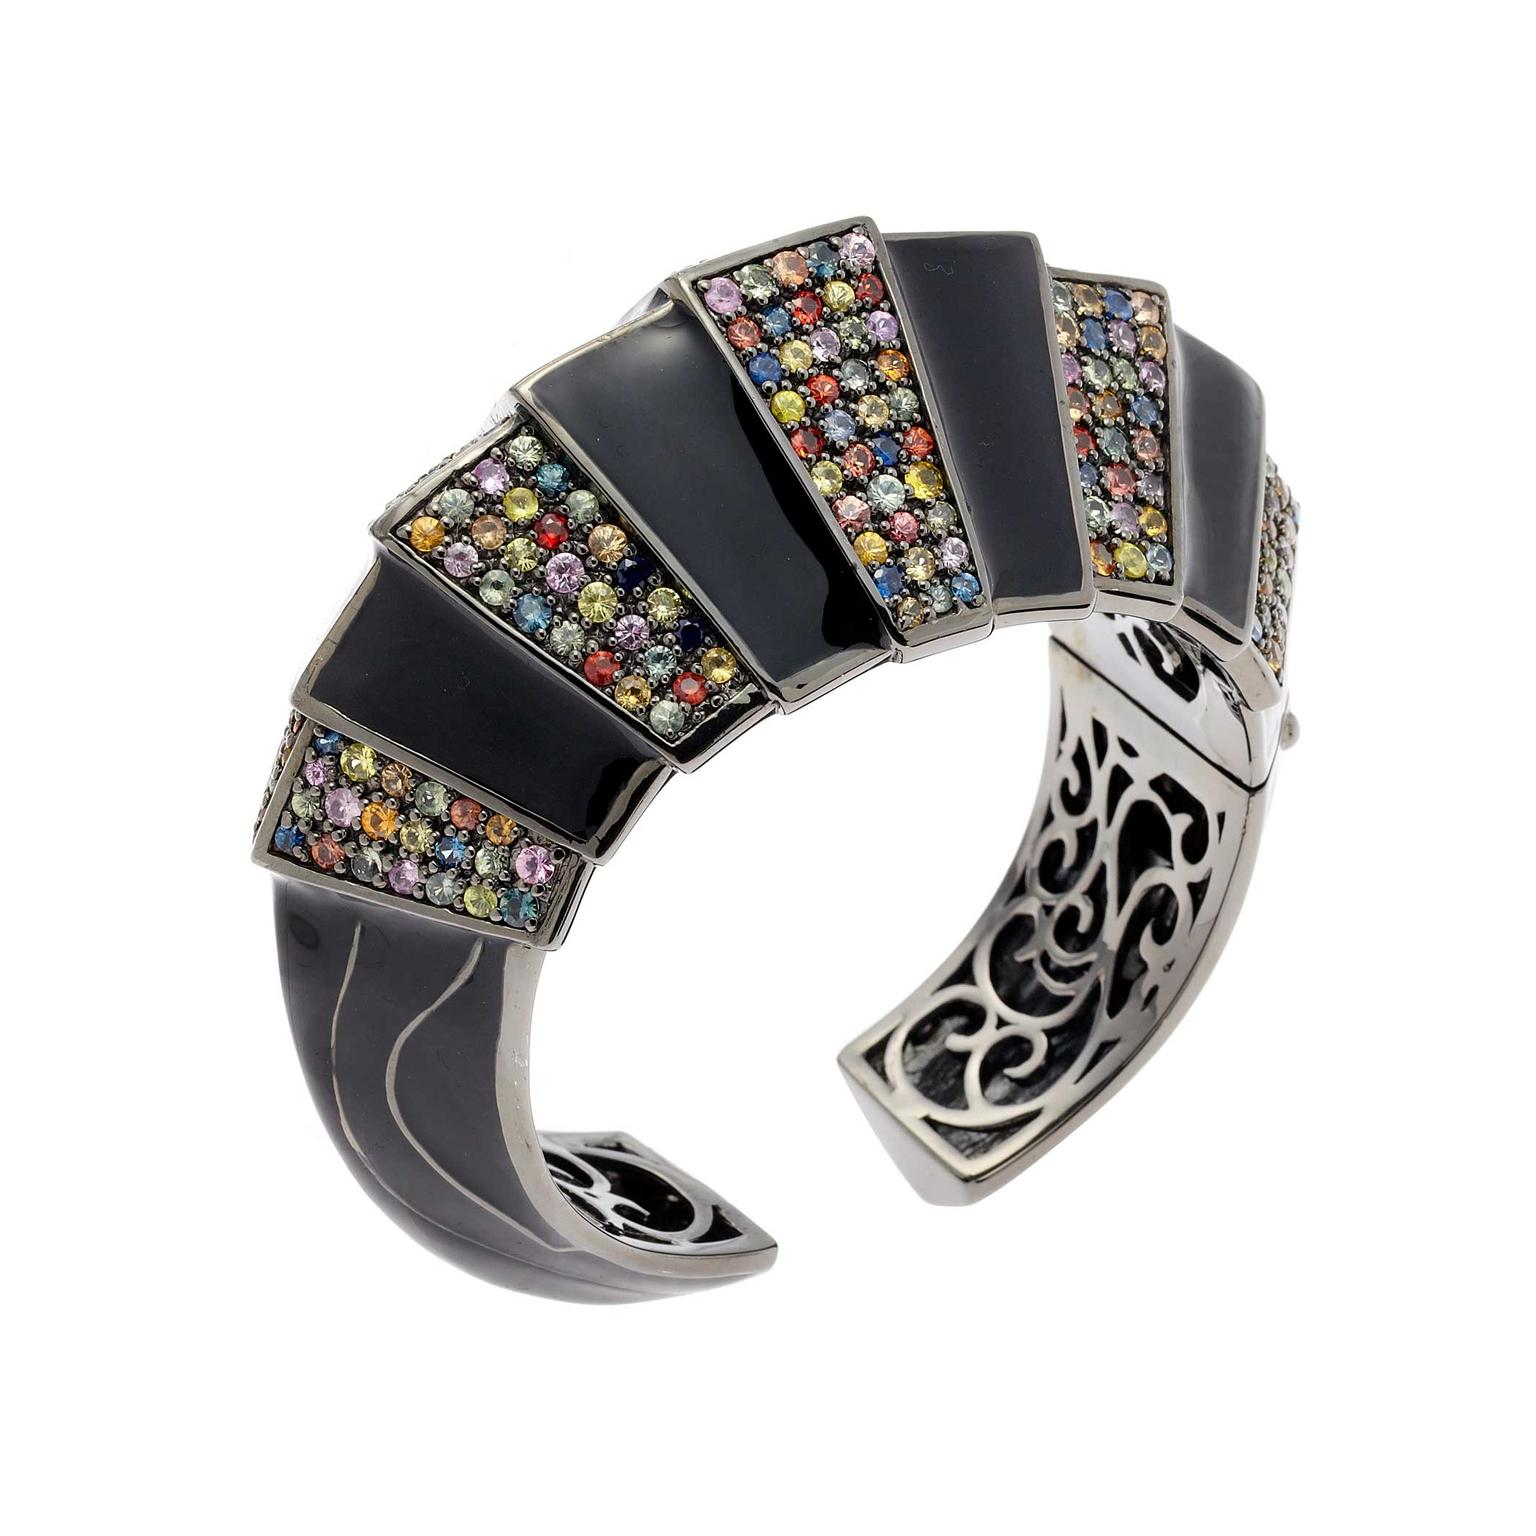 Matthew Campbell Laurenza Primordial silver cuff in black enamel, and sapphires in black rhodium